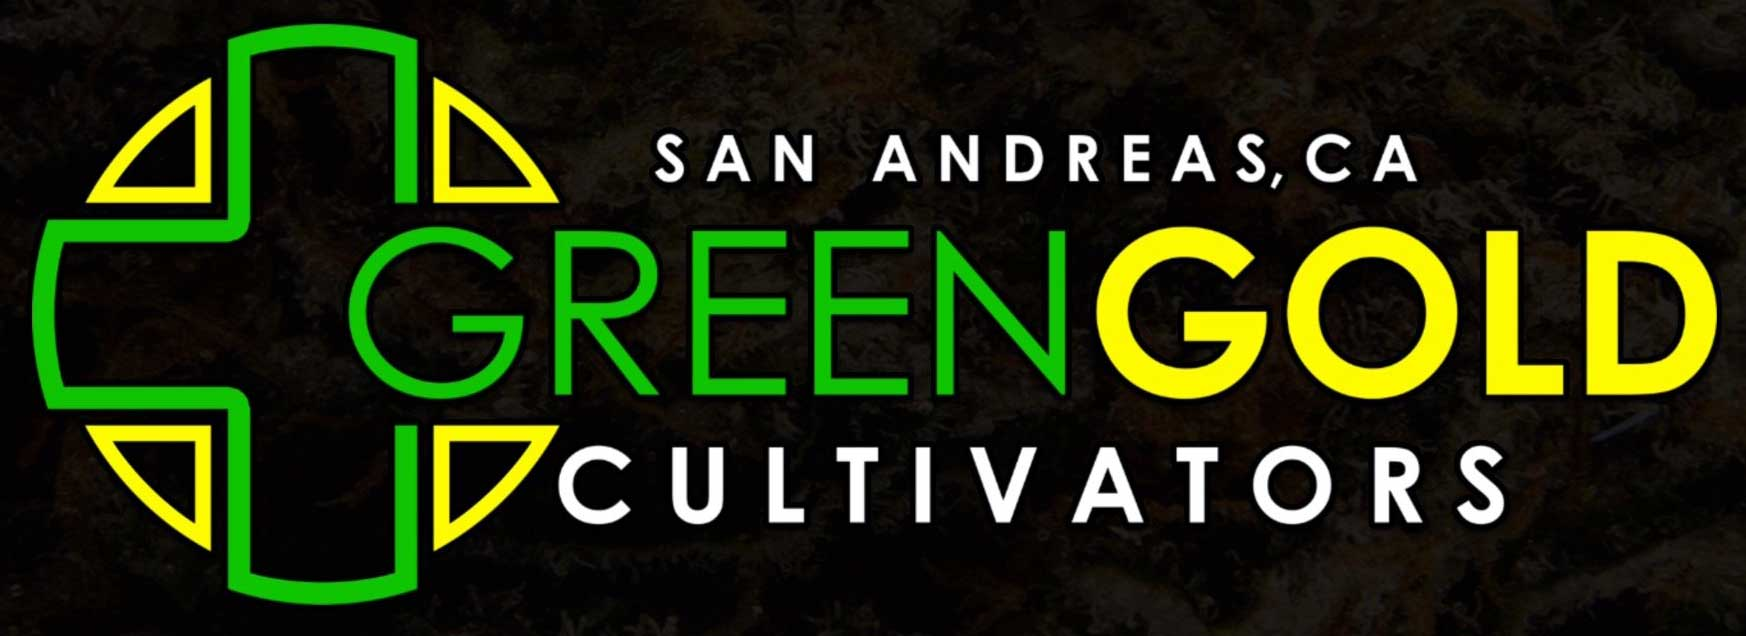 Green Gold Cultivators in San Andreas